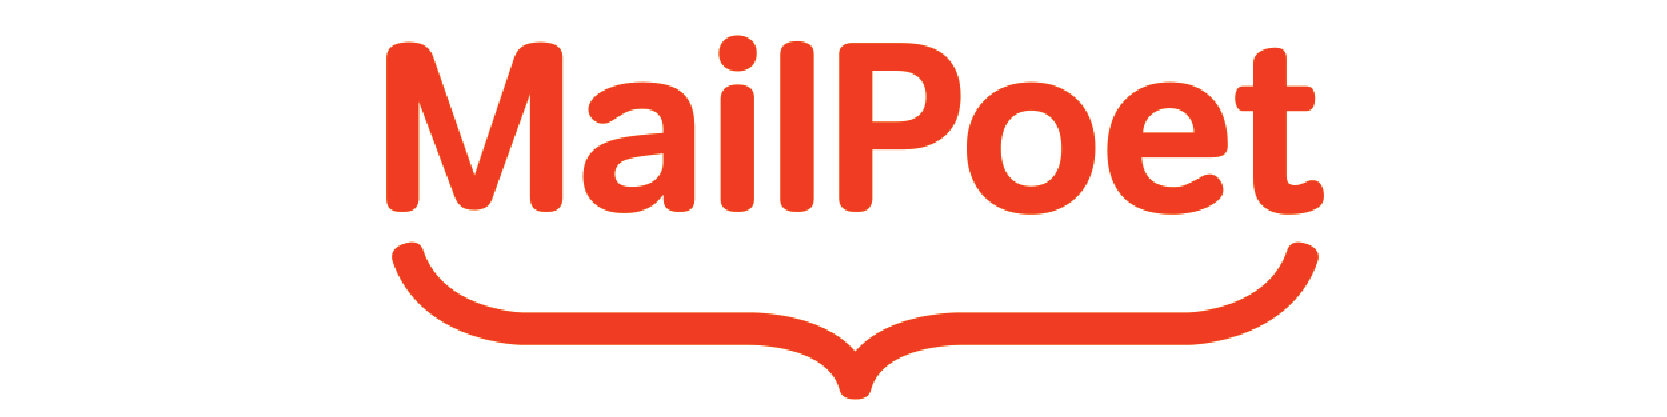 Mail-Poet-4-x-1.png